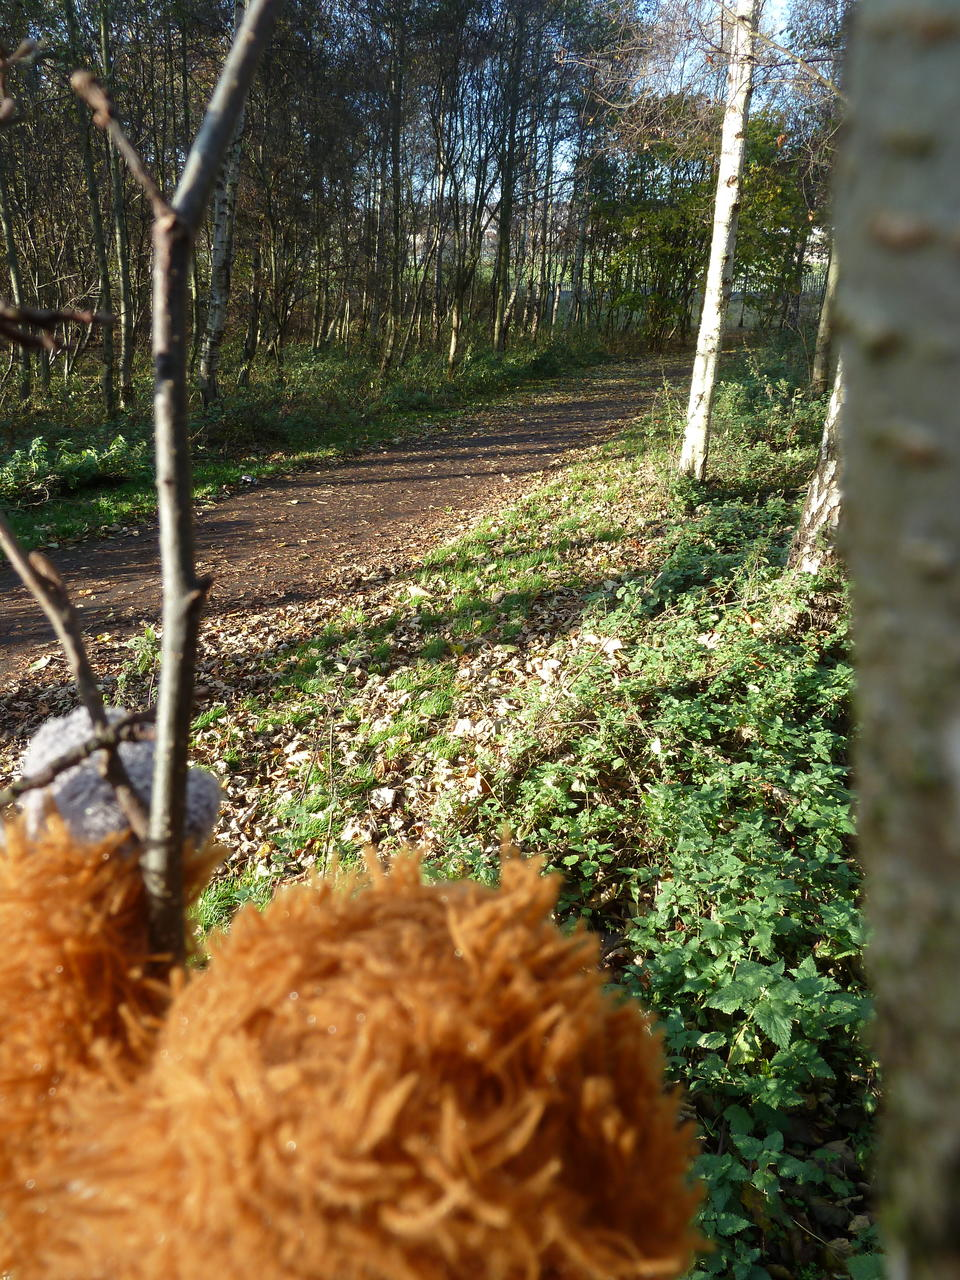 View of the path from the tree, Pongo's head in the foreground